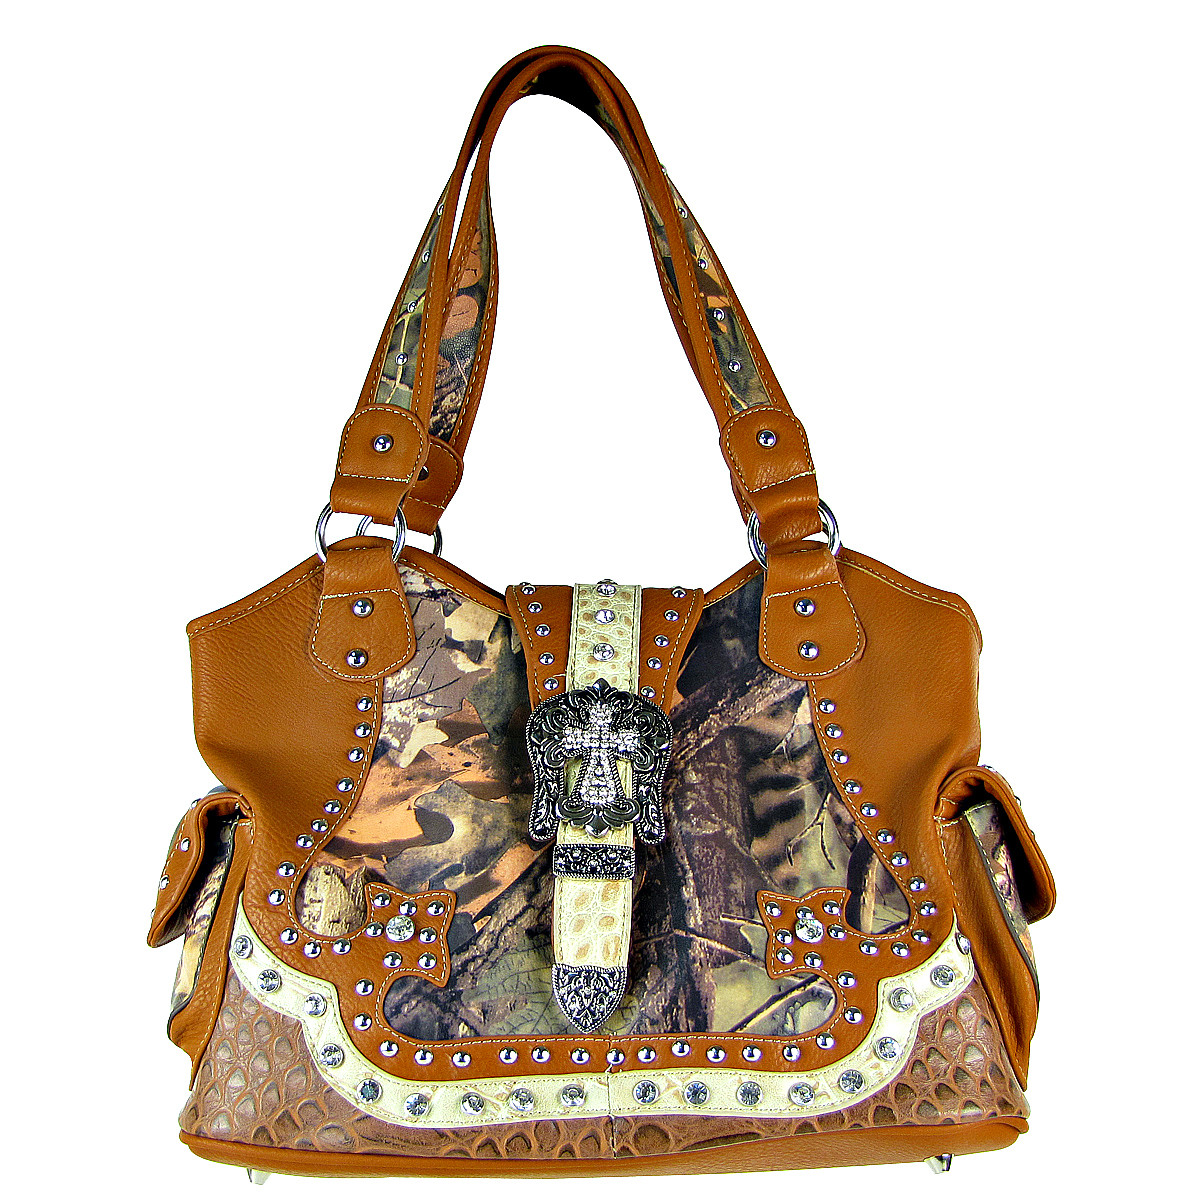 BROWN WESTERN MOSSY CAMO STUDDED RHINESTONE BUCKLE LOOK SHOULDER HANDBAG HB1-12156-1BRN